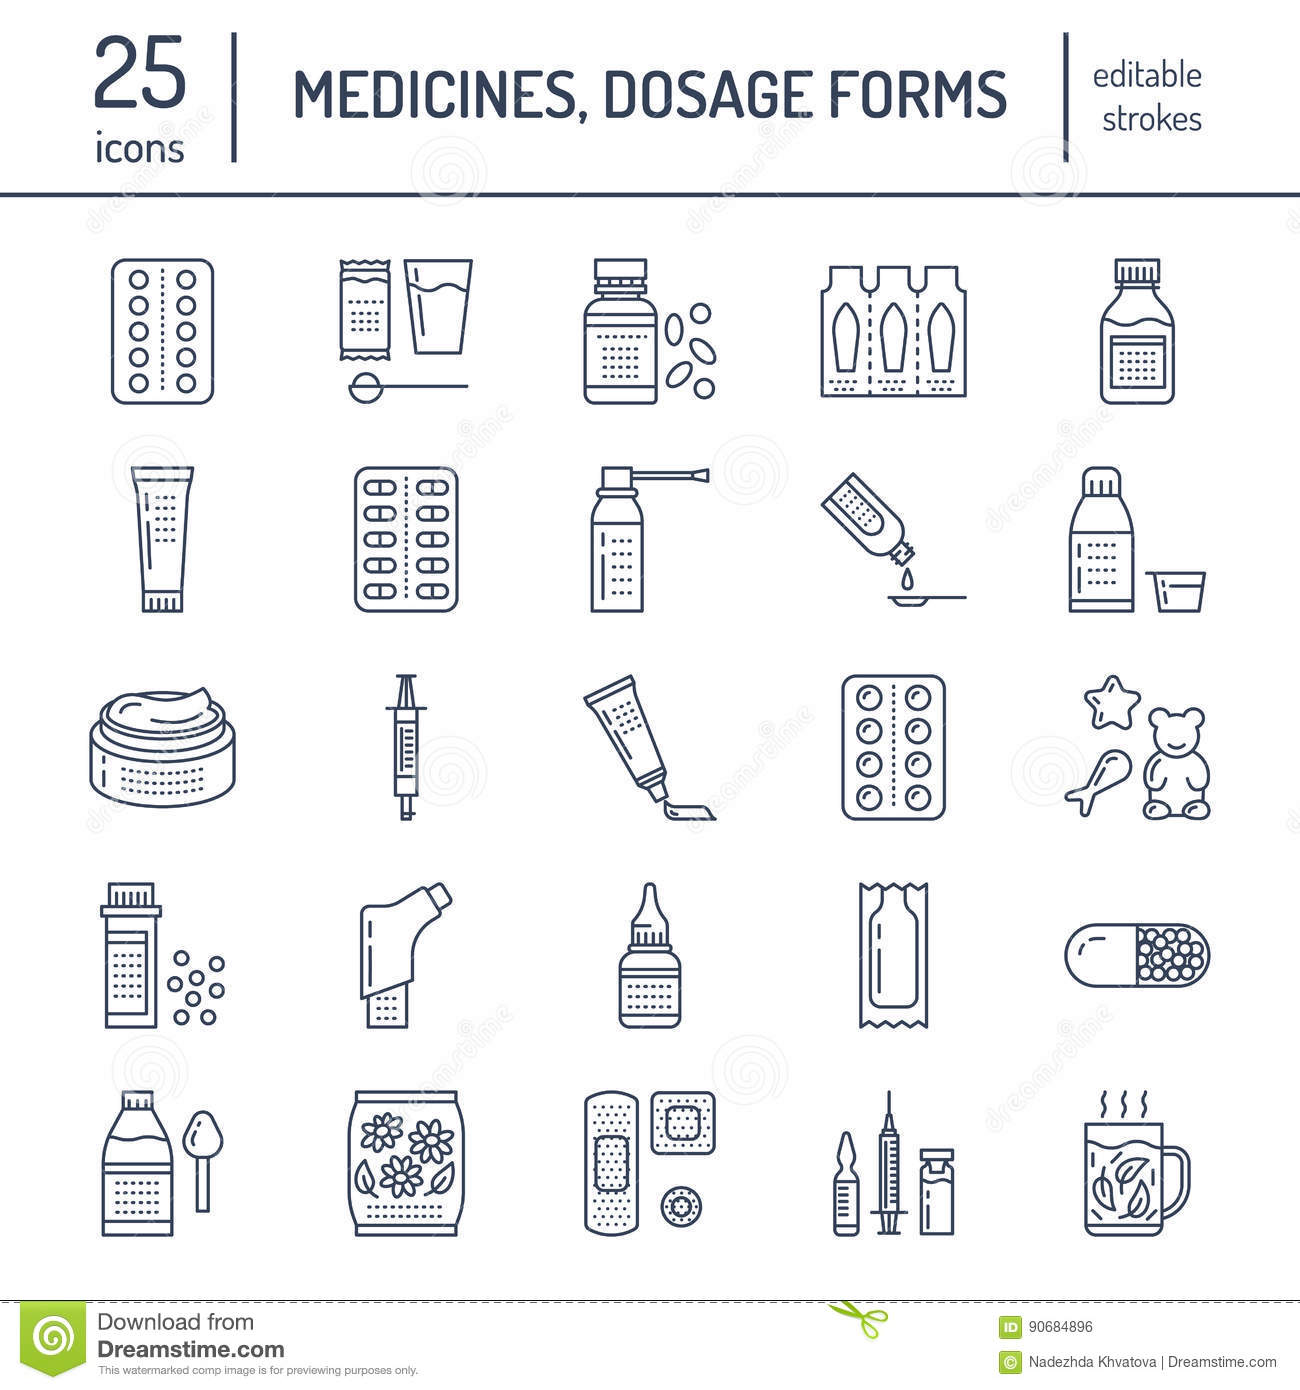 Medicines, dosage forms line icons. Pharmacy medicaments, tablet, capsules, pills, antibiotics, vitamins, painkillers